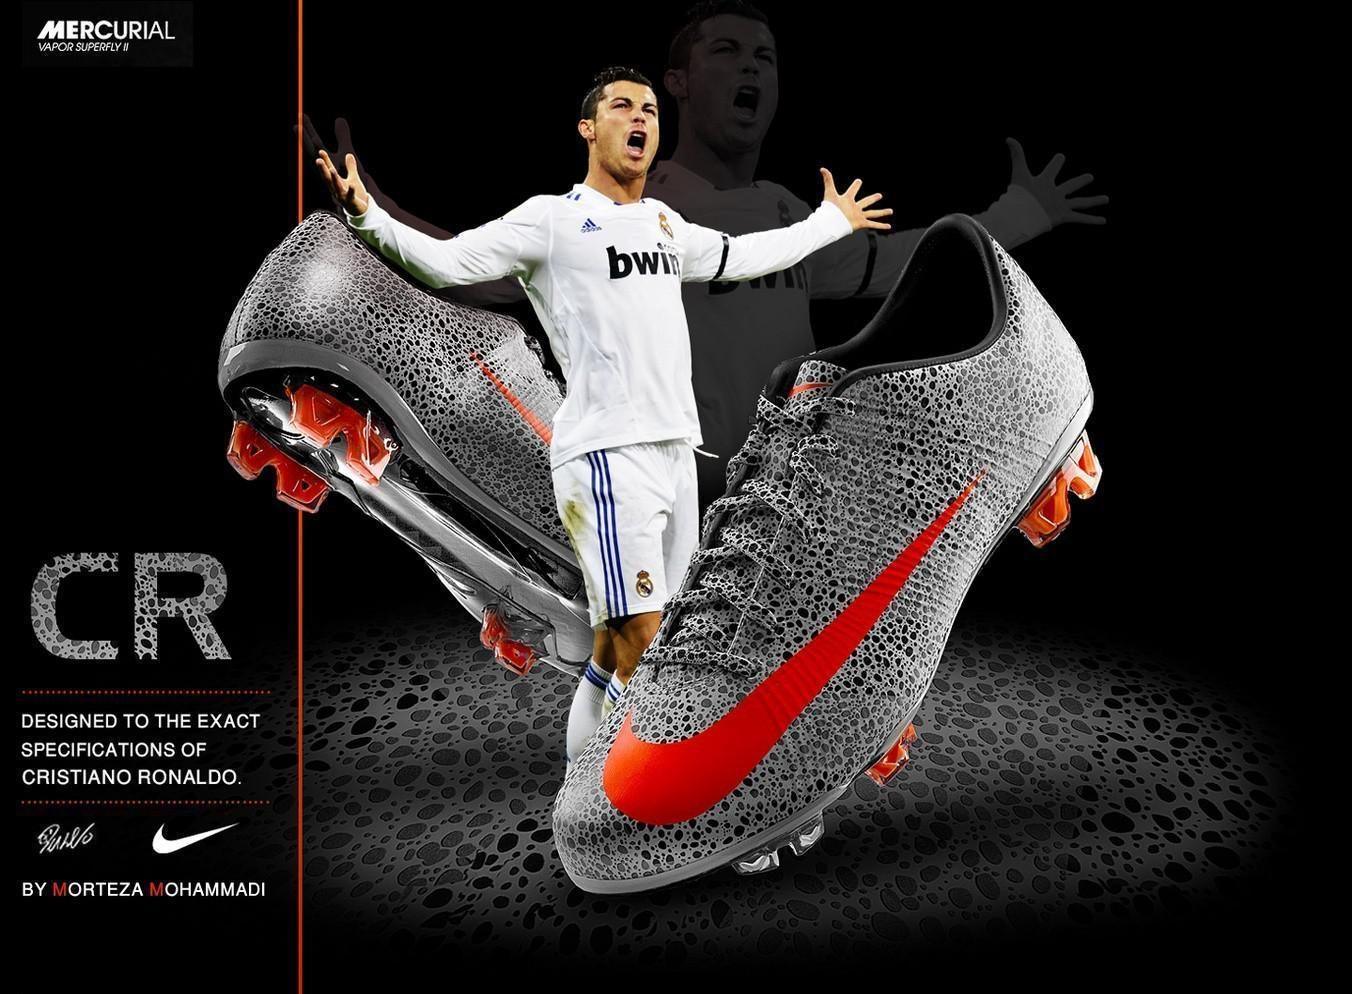 new product b6736 af1a6 Cristiano Ronaldo Wallpapers Nike Mercurial 2017 - Wallpaper Cave